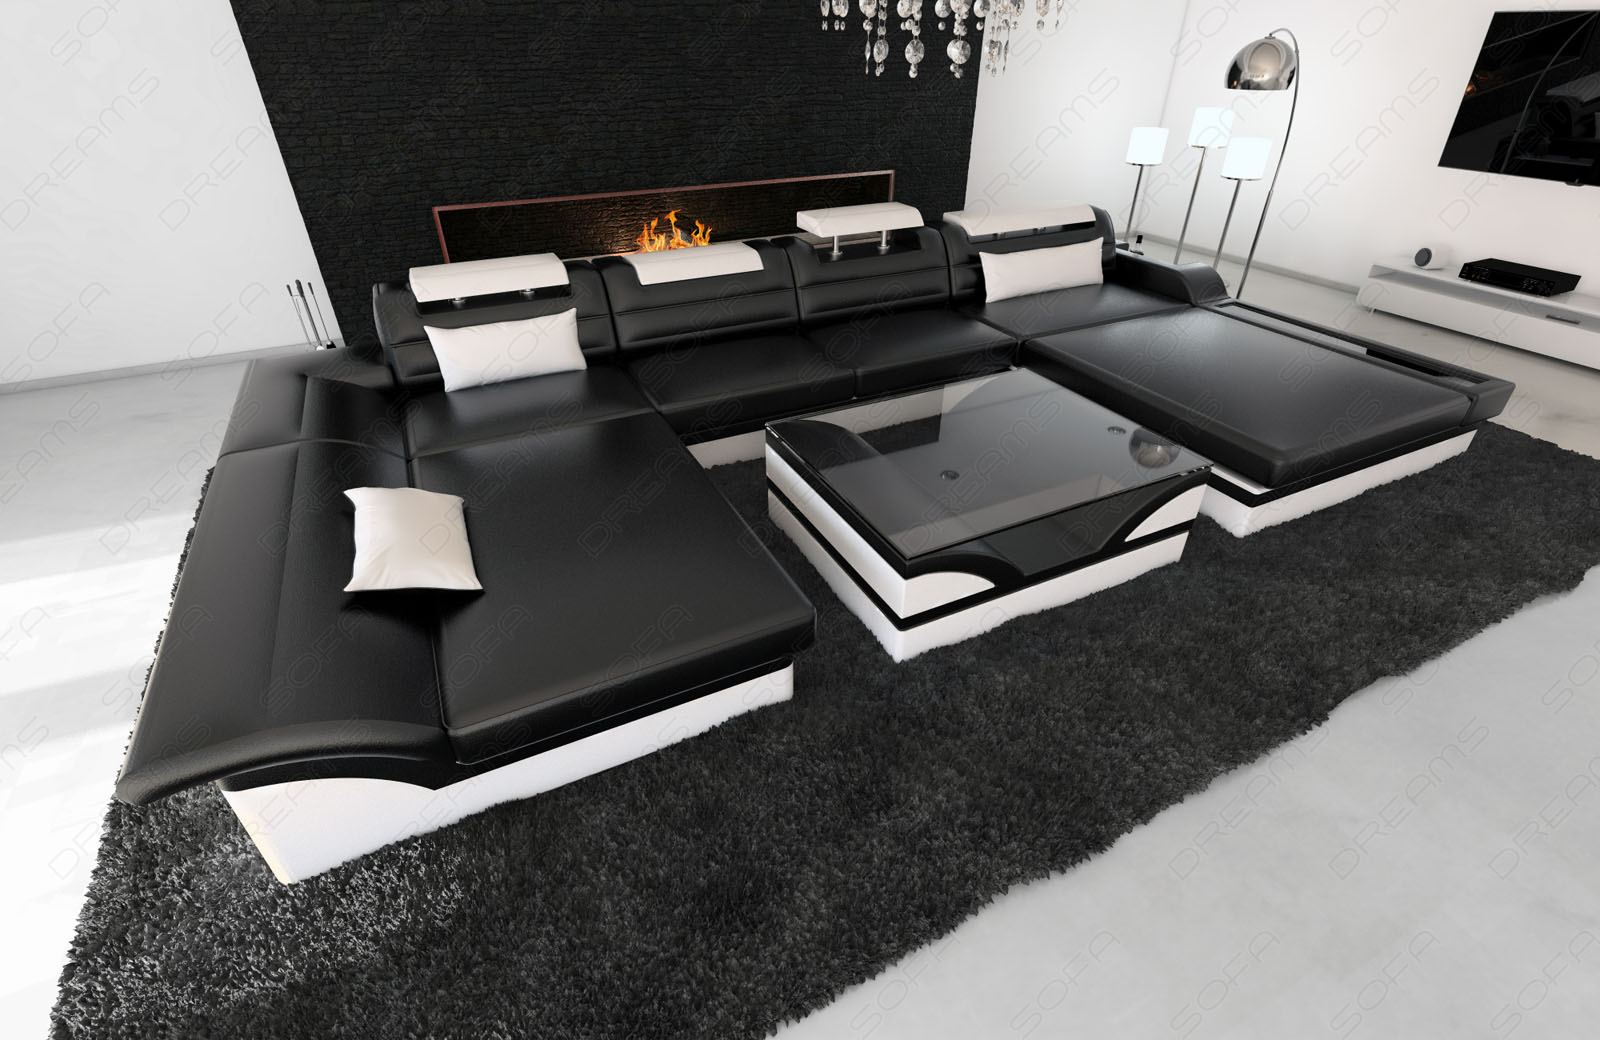 ledersofa xxl monza u form designer ledercouch mit led. Black Bedroom Furniture Sets. Home Design Ideas